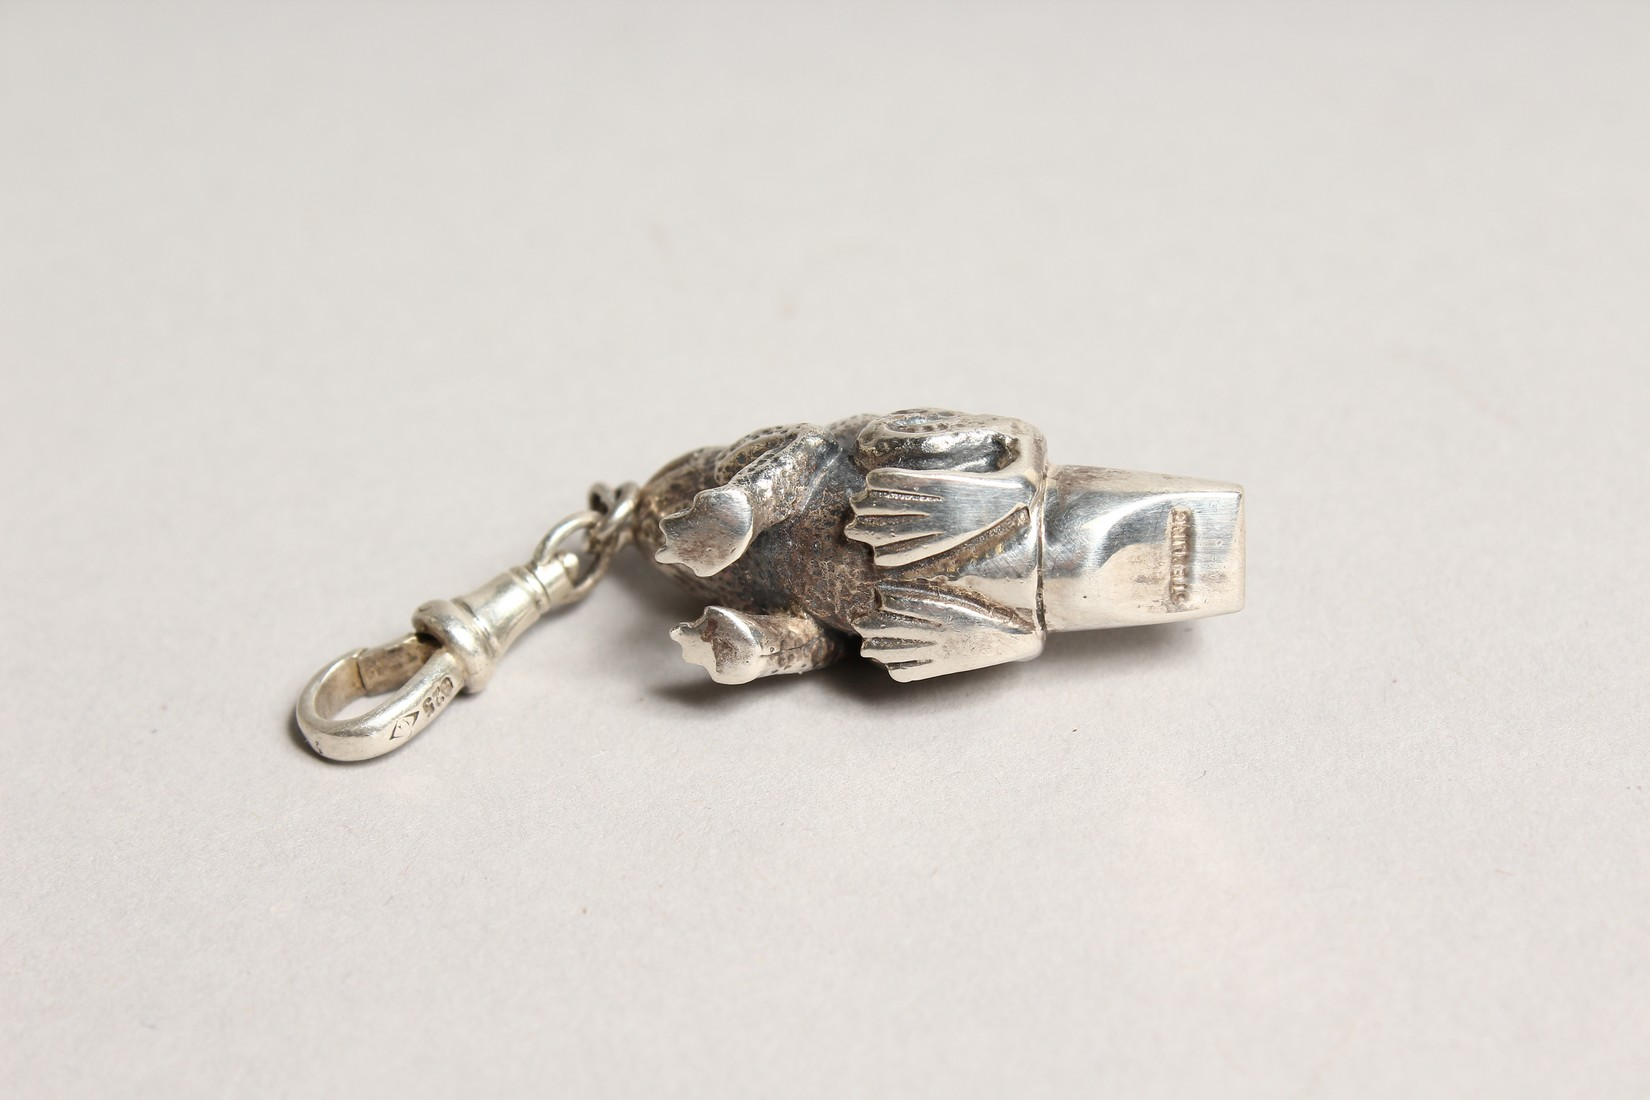 A NOVELTY SILVER FROG WHISTLE - Image 2 of 2